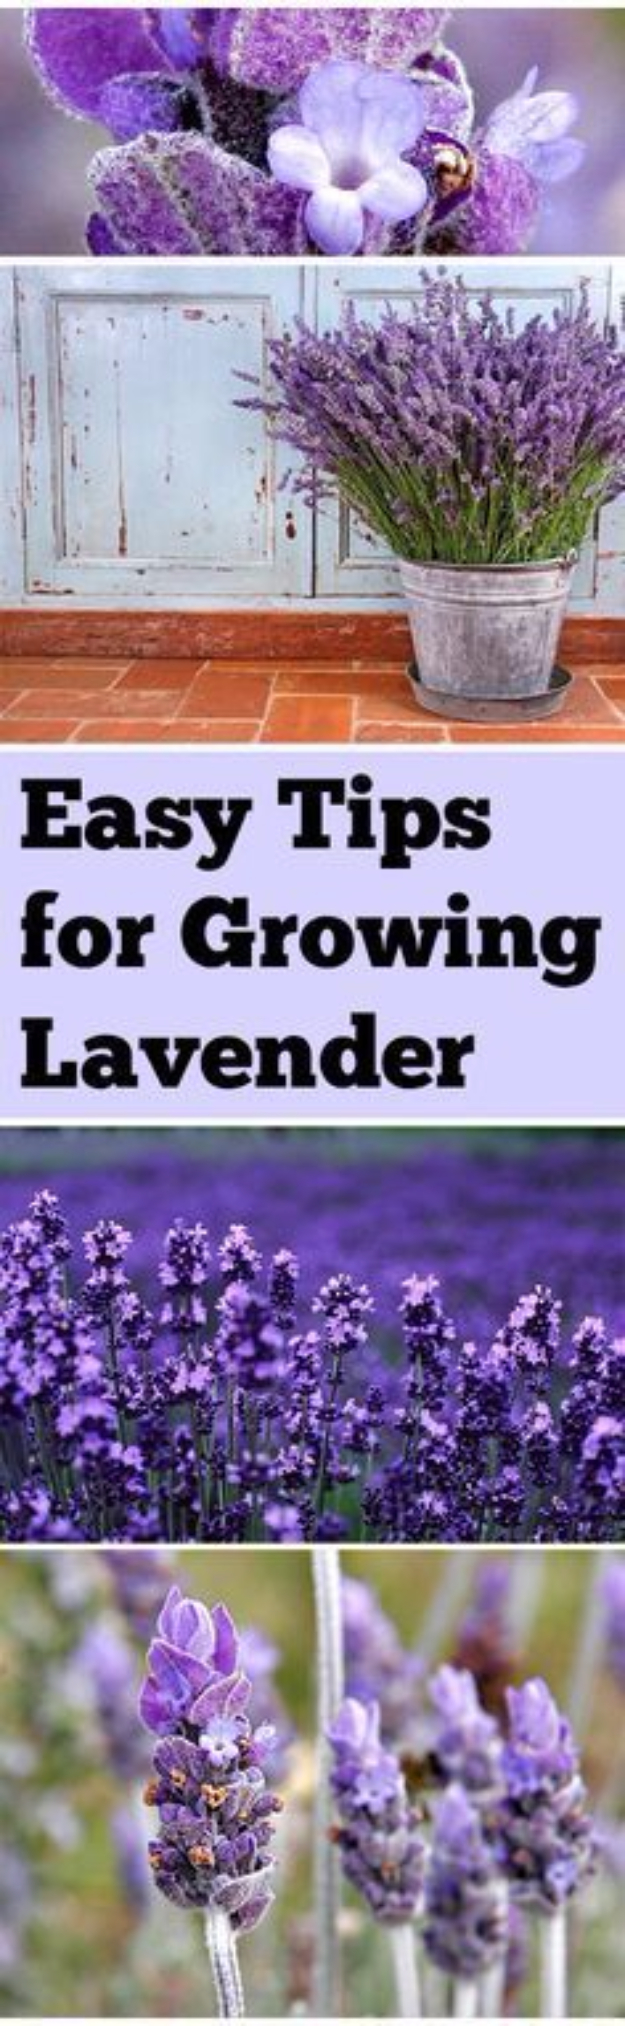 DIY Spring Gardening Projects - Easy Tips for Growing Lavender - Cool and Easy Planting Tips for Spring Garden - Step by Step Tutorials for Growing Seeds, Plants, Vegetables and Flowers in You Yard - DIY Project Ideas for Women and Men - Creative and Quick Backyard Ideas For Summer